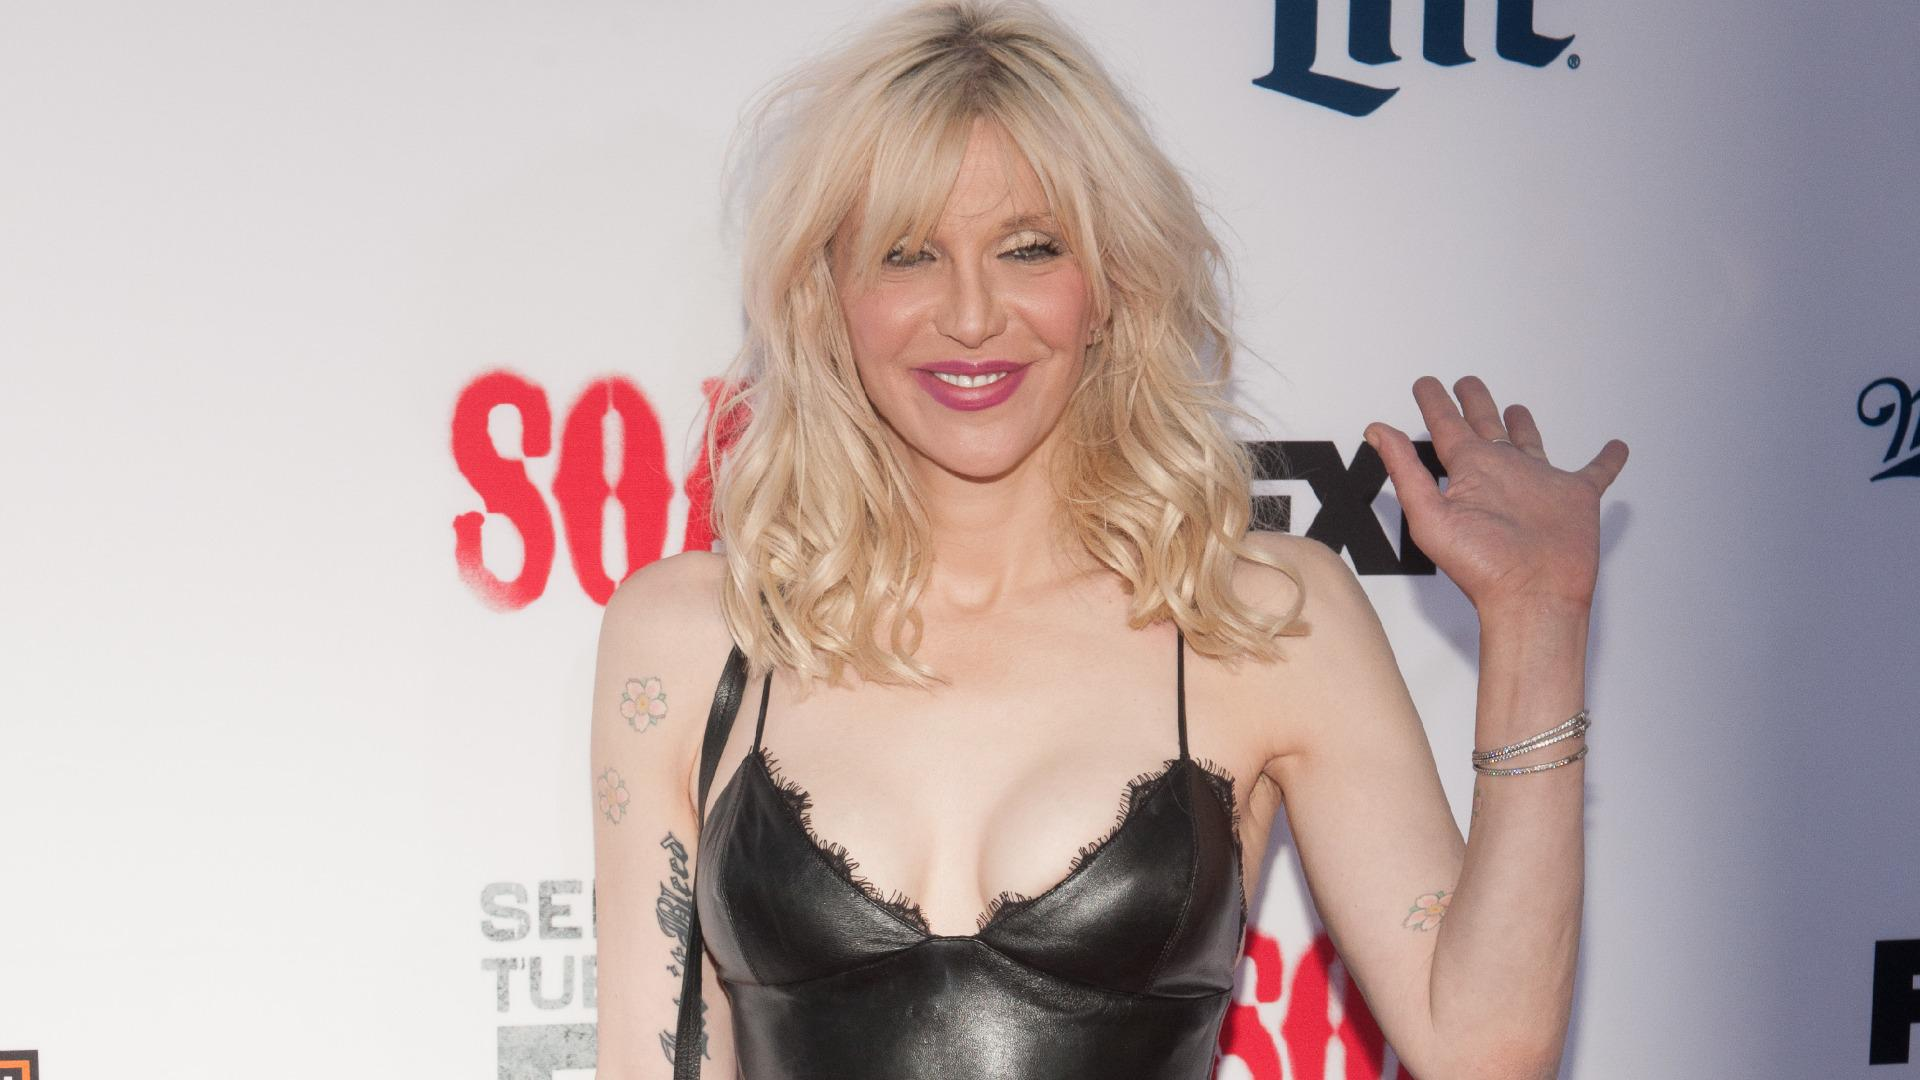 Courtney Love Images